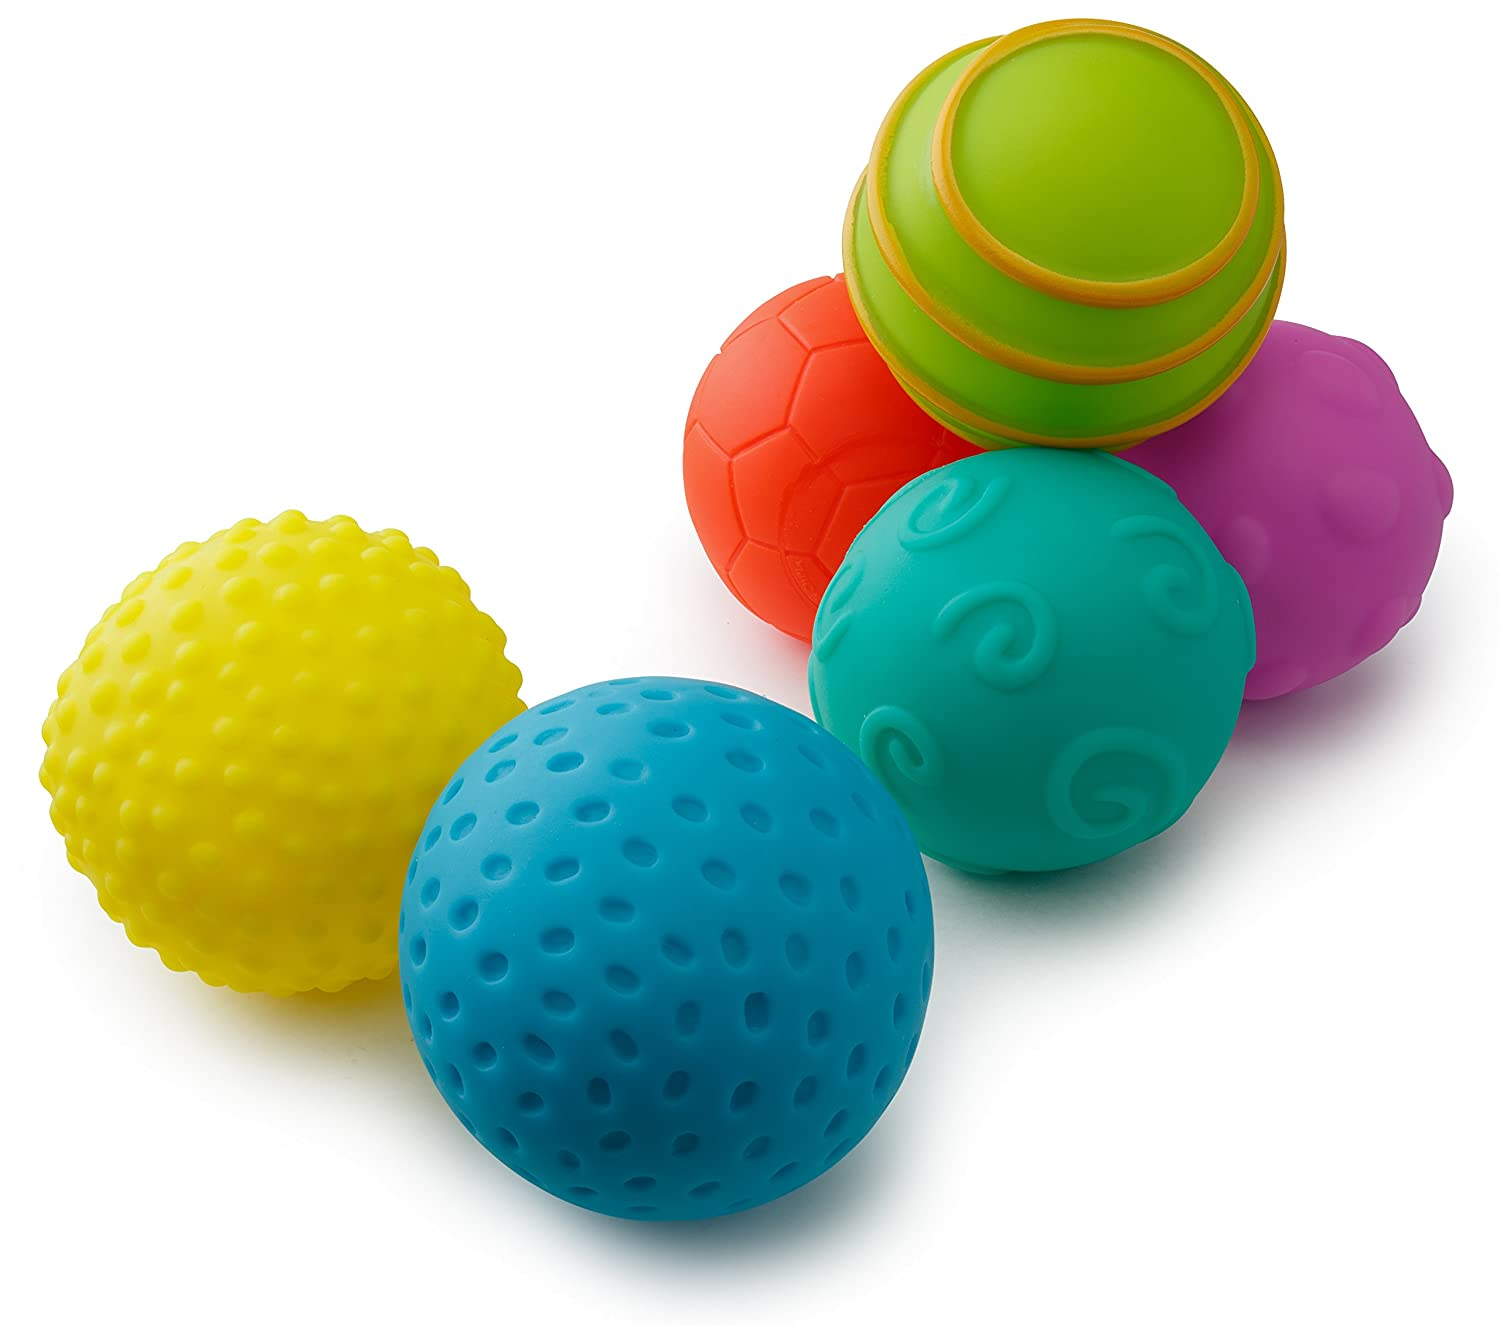 Playkidz Soft & Textured Balls